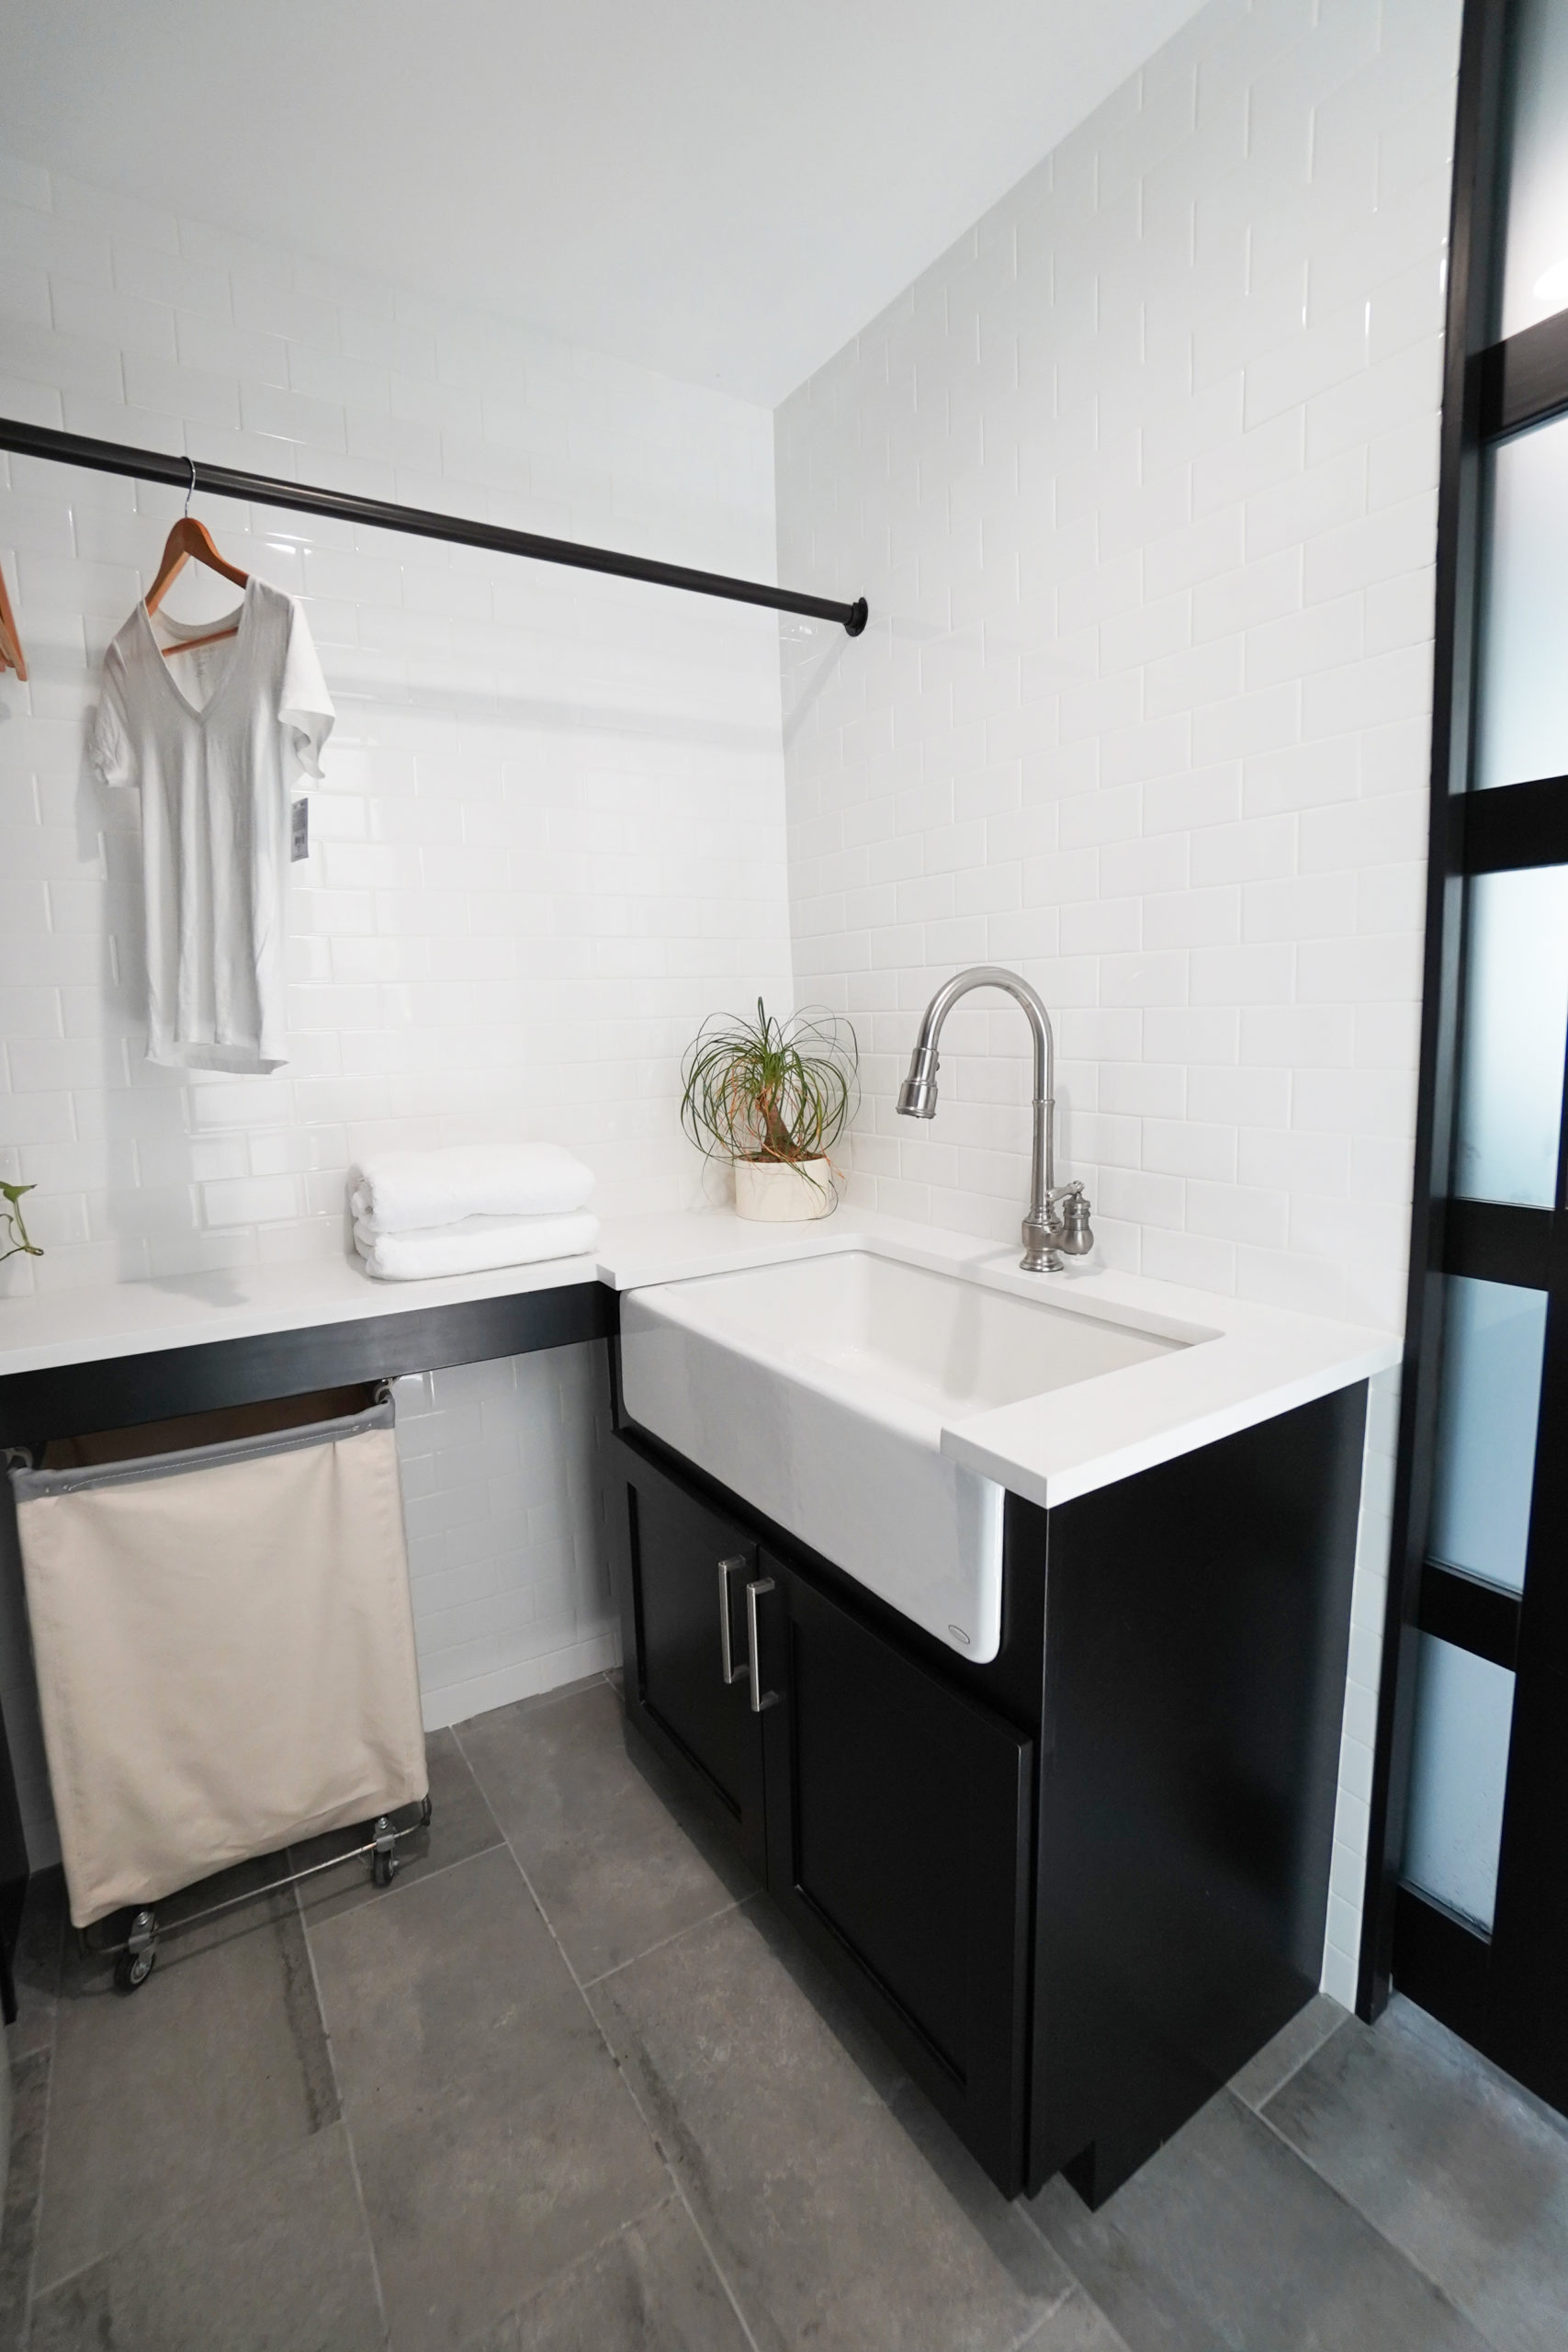 Laundry room design ideas atlanta home remodeling